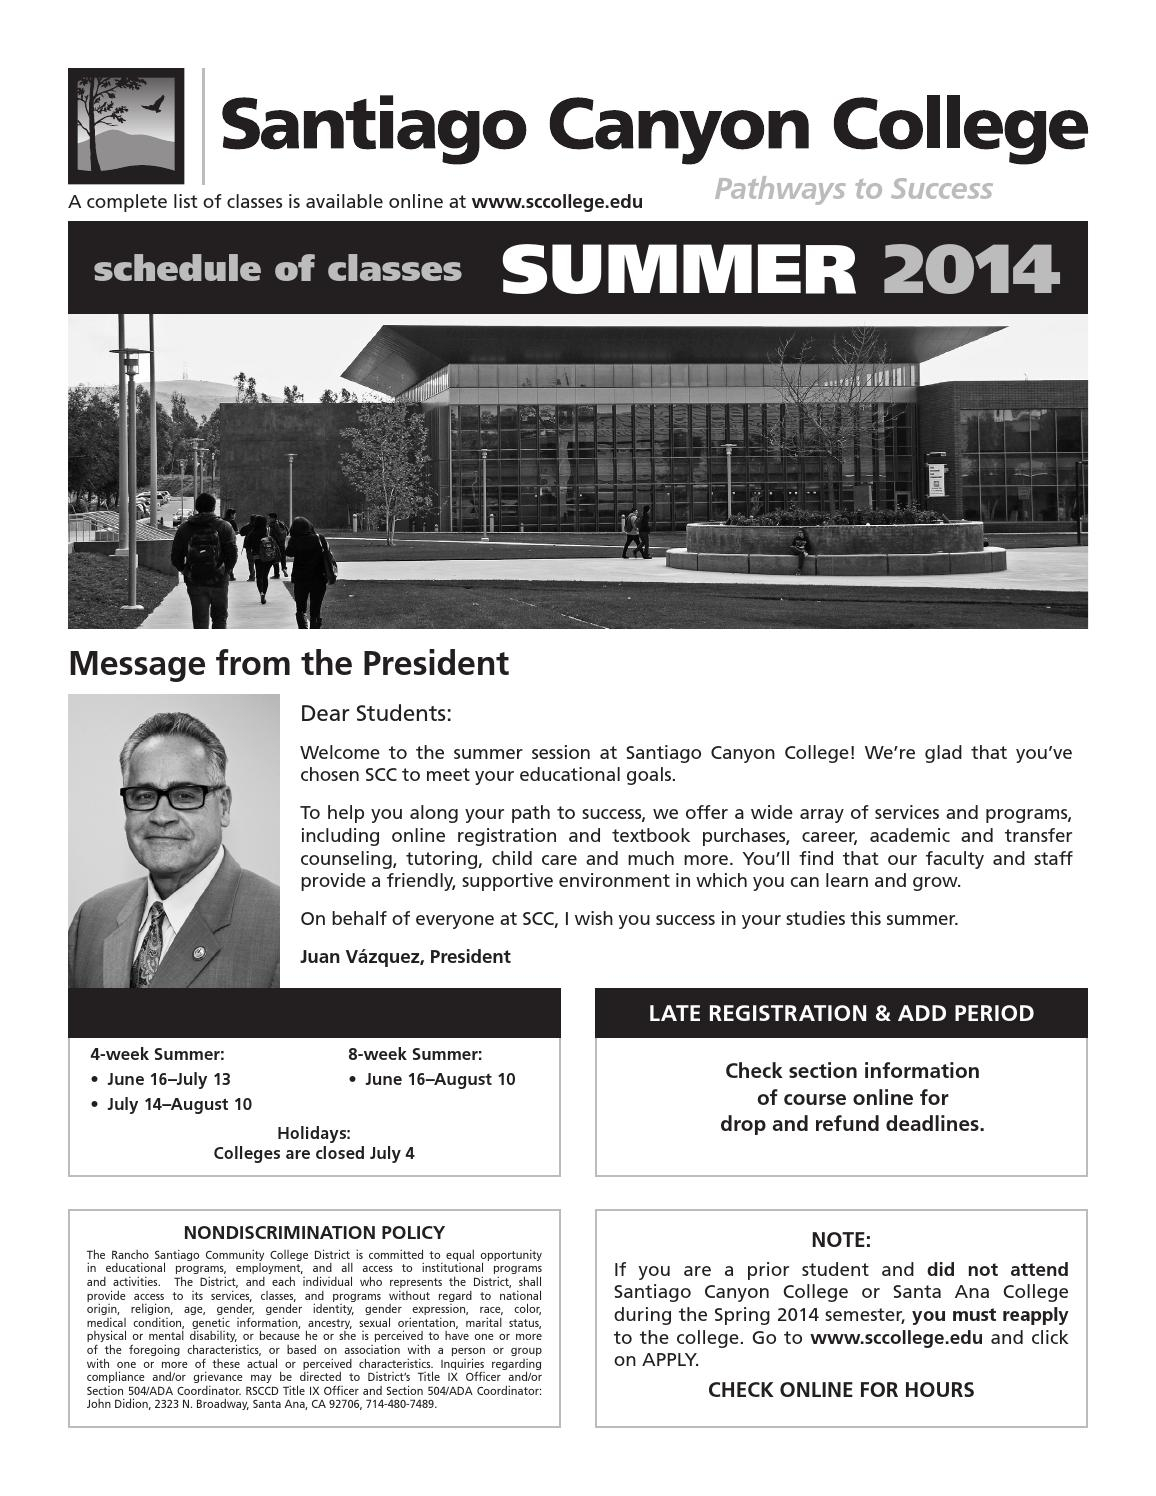 Santiago Canyon College Summer Schedule Of Classes 2014 inside College Of The Canyons Holiday Schedule